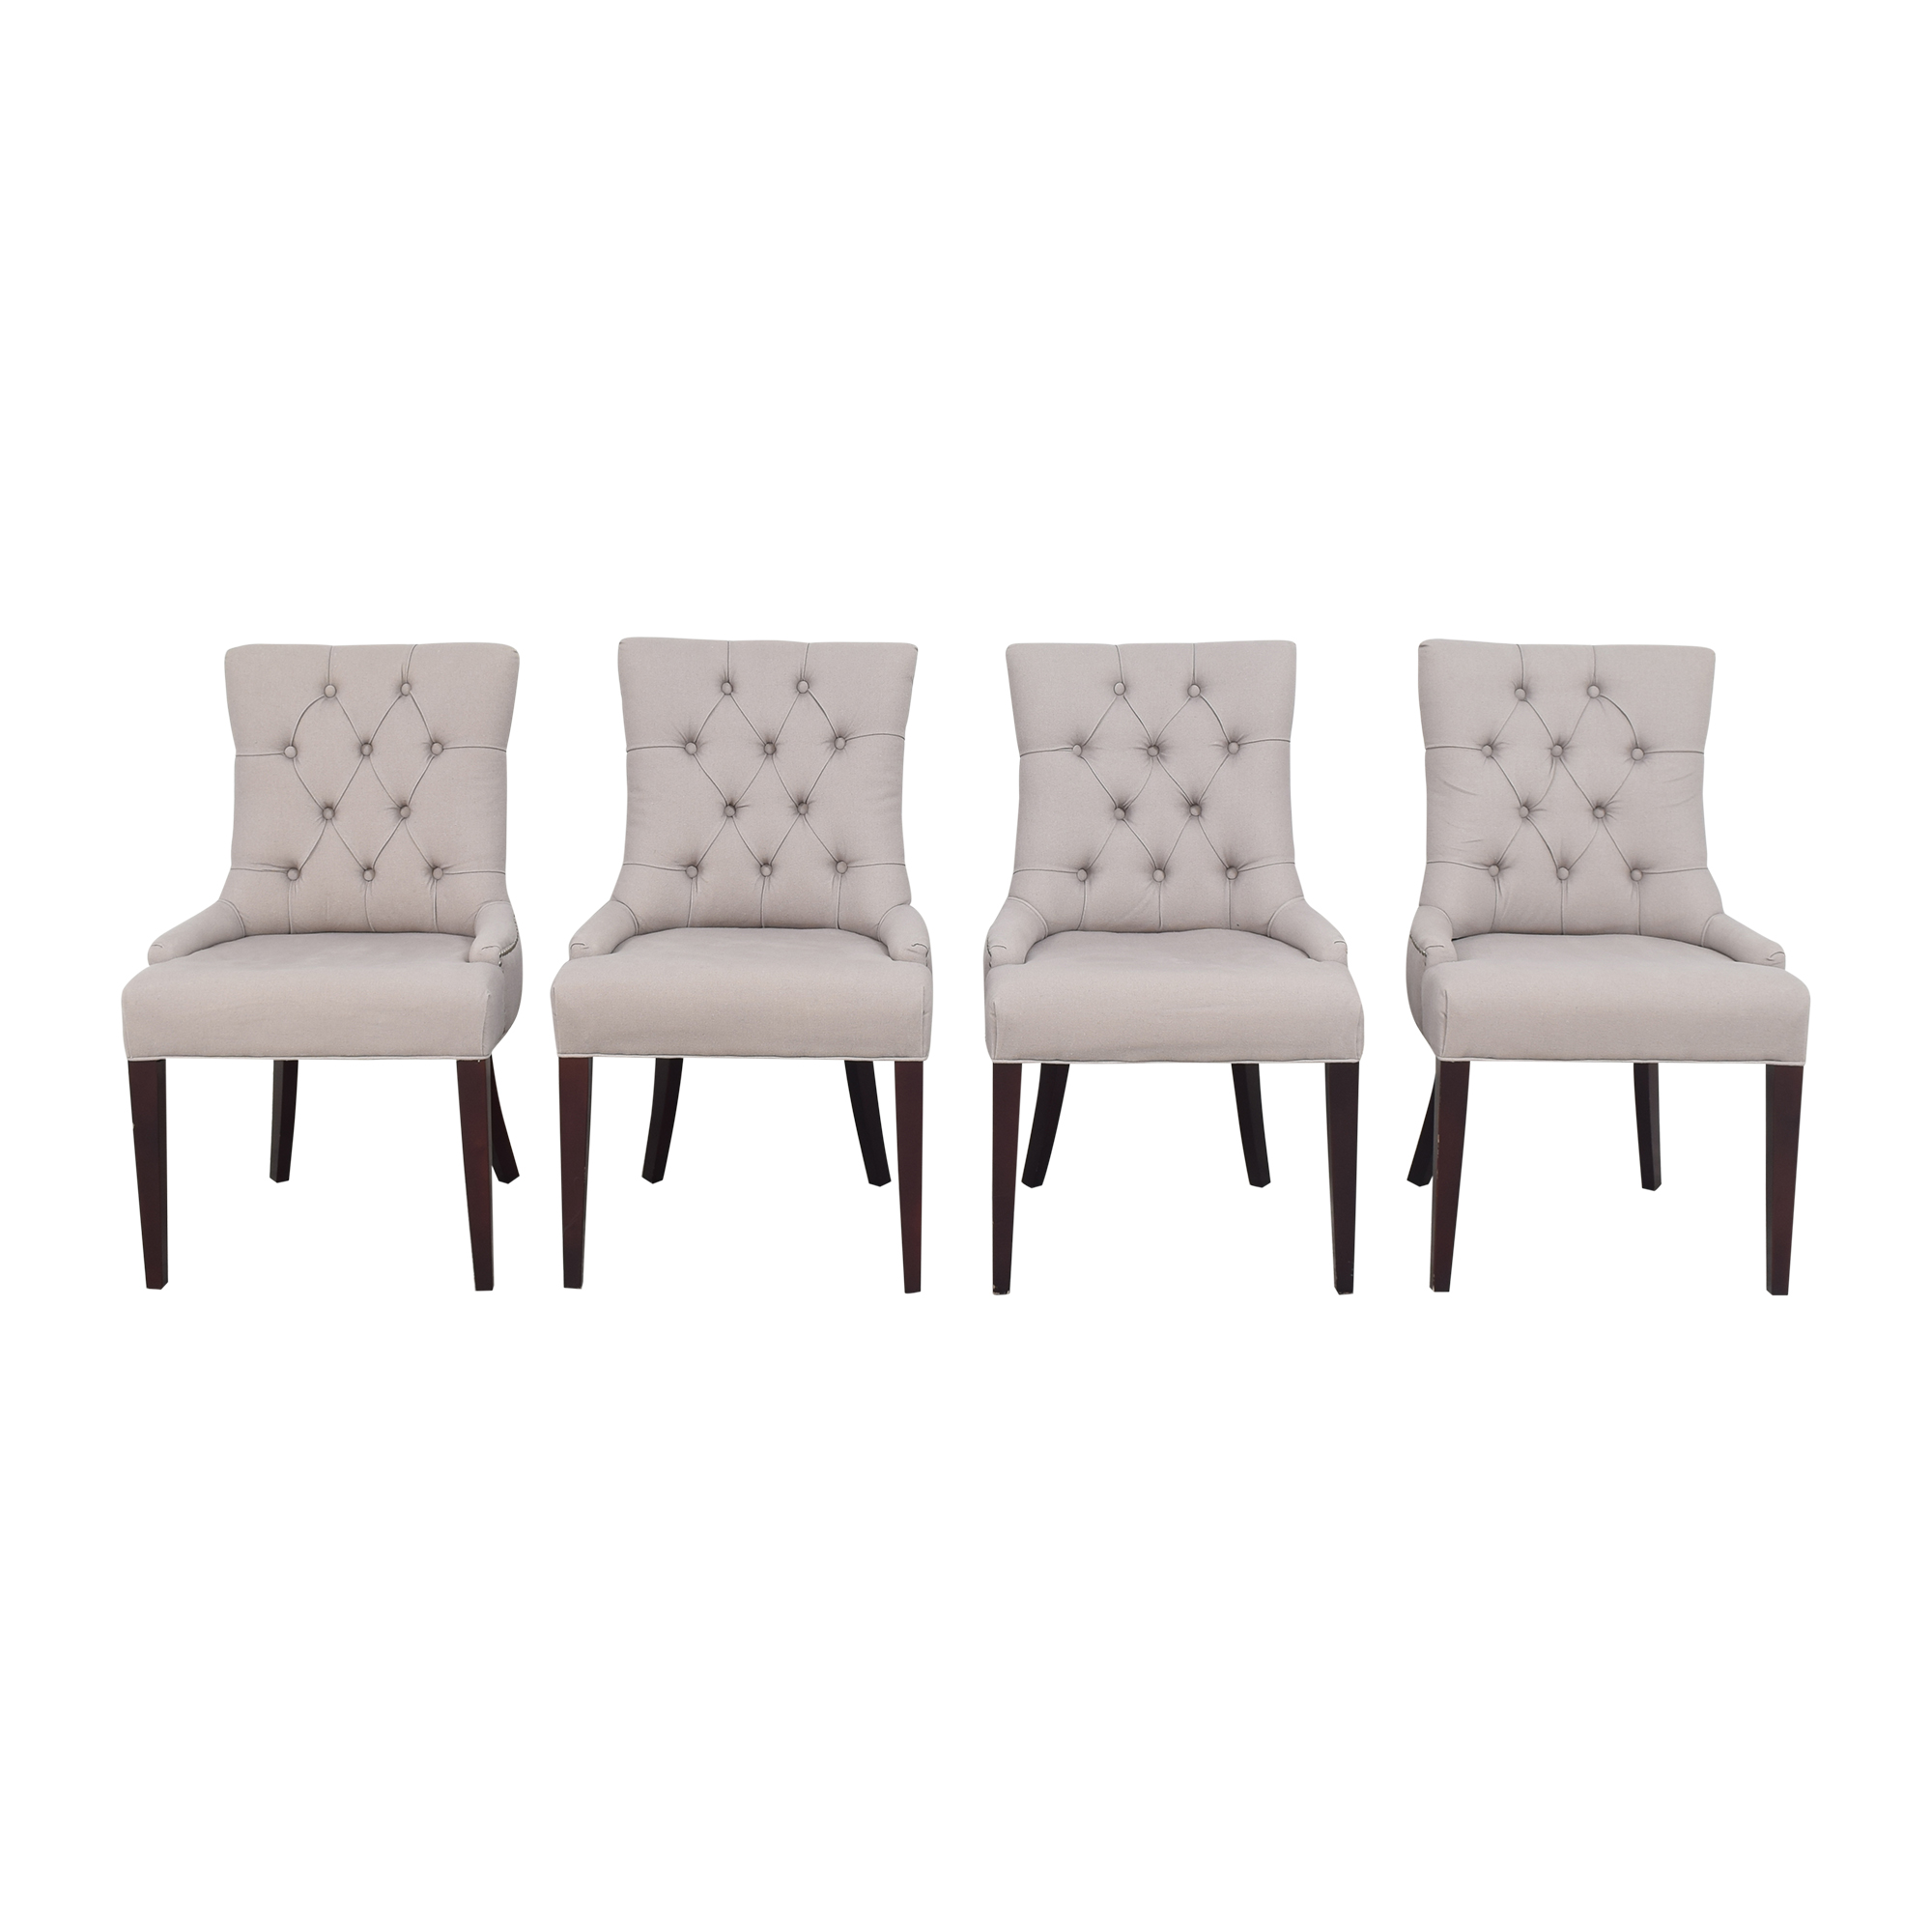 Safavieh Safavieh Nimes Tufted Dining Chairs ct